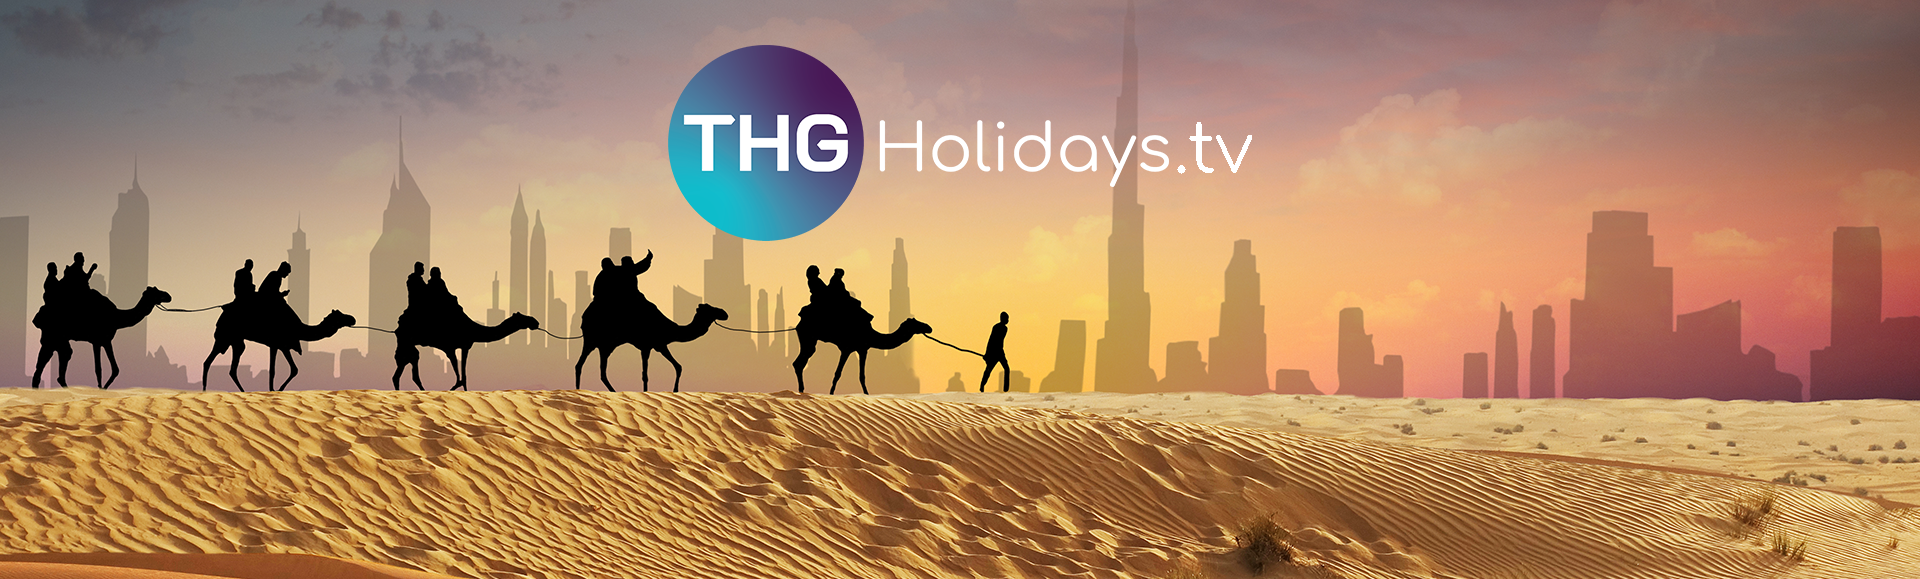 Camels in desert with THG TV logo